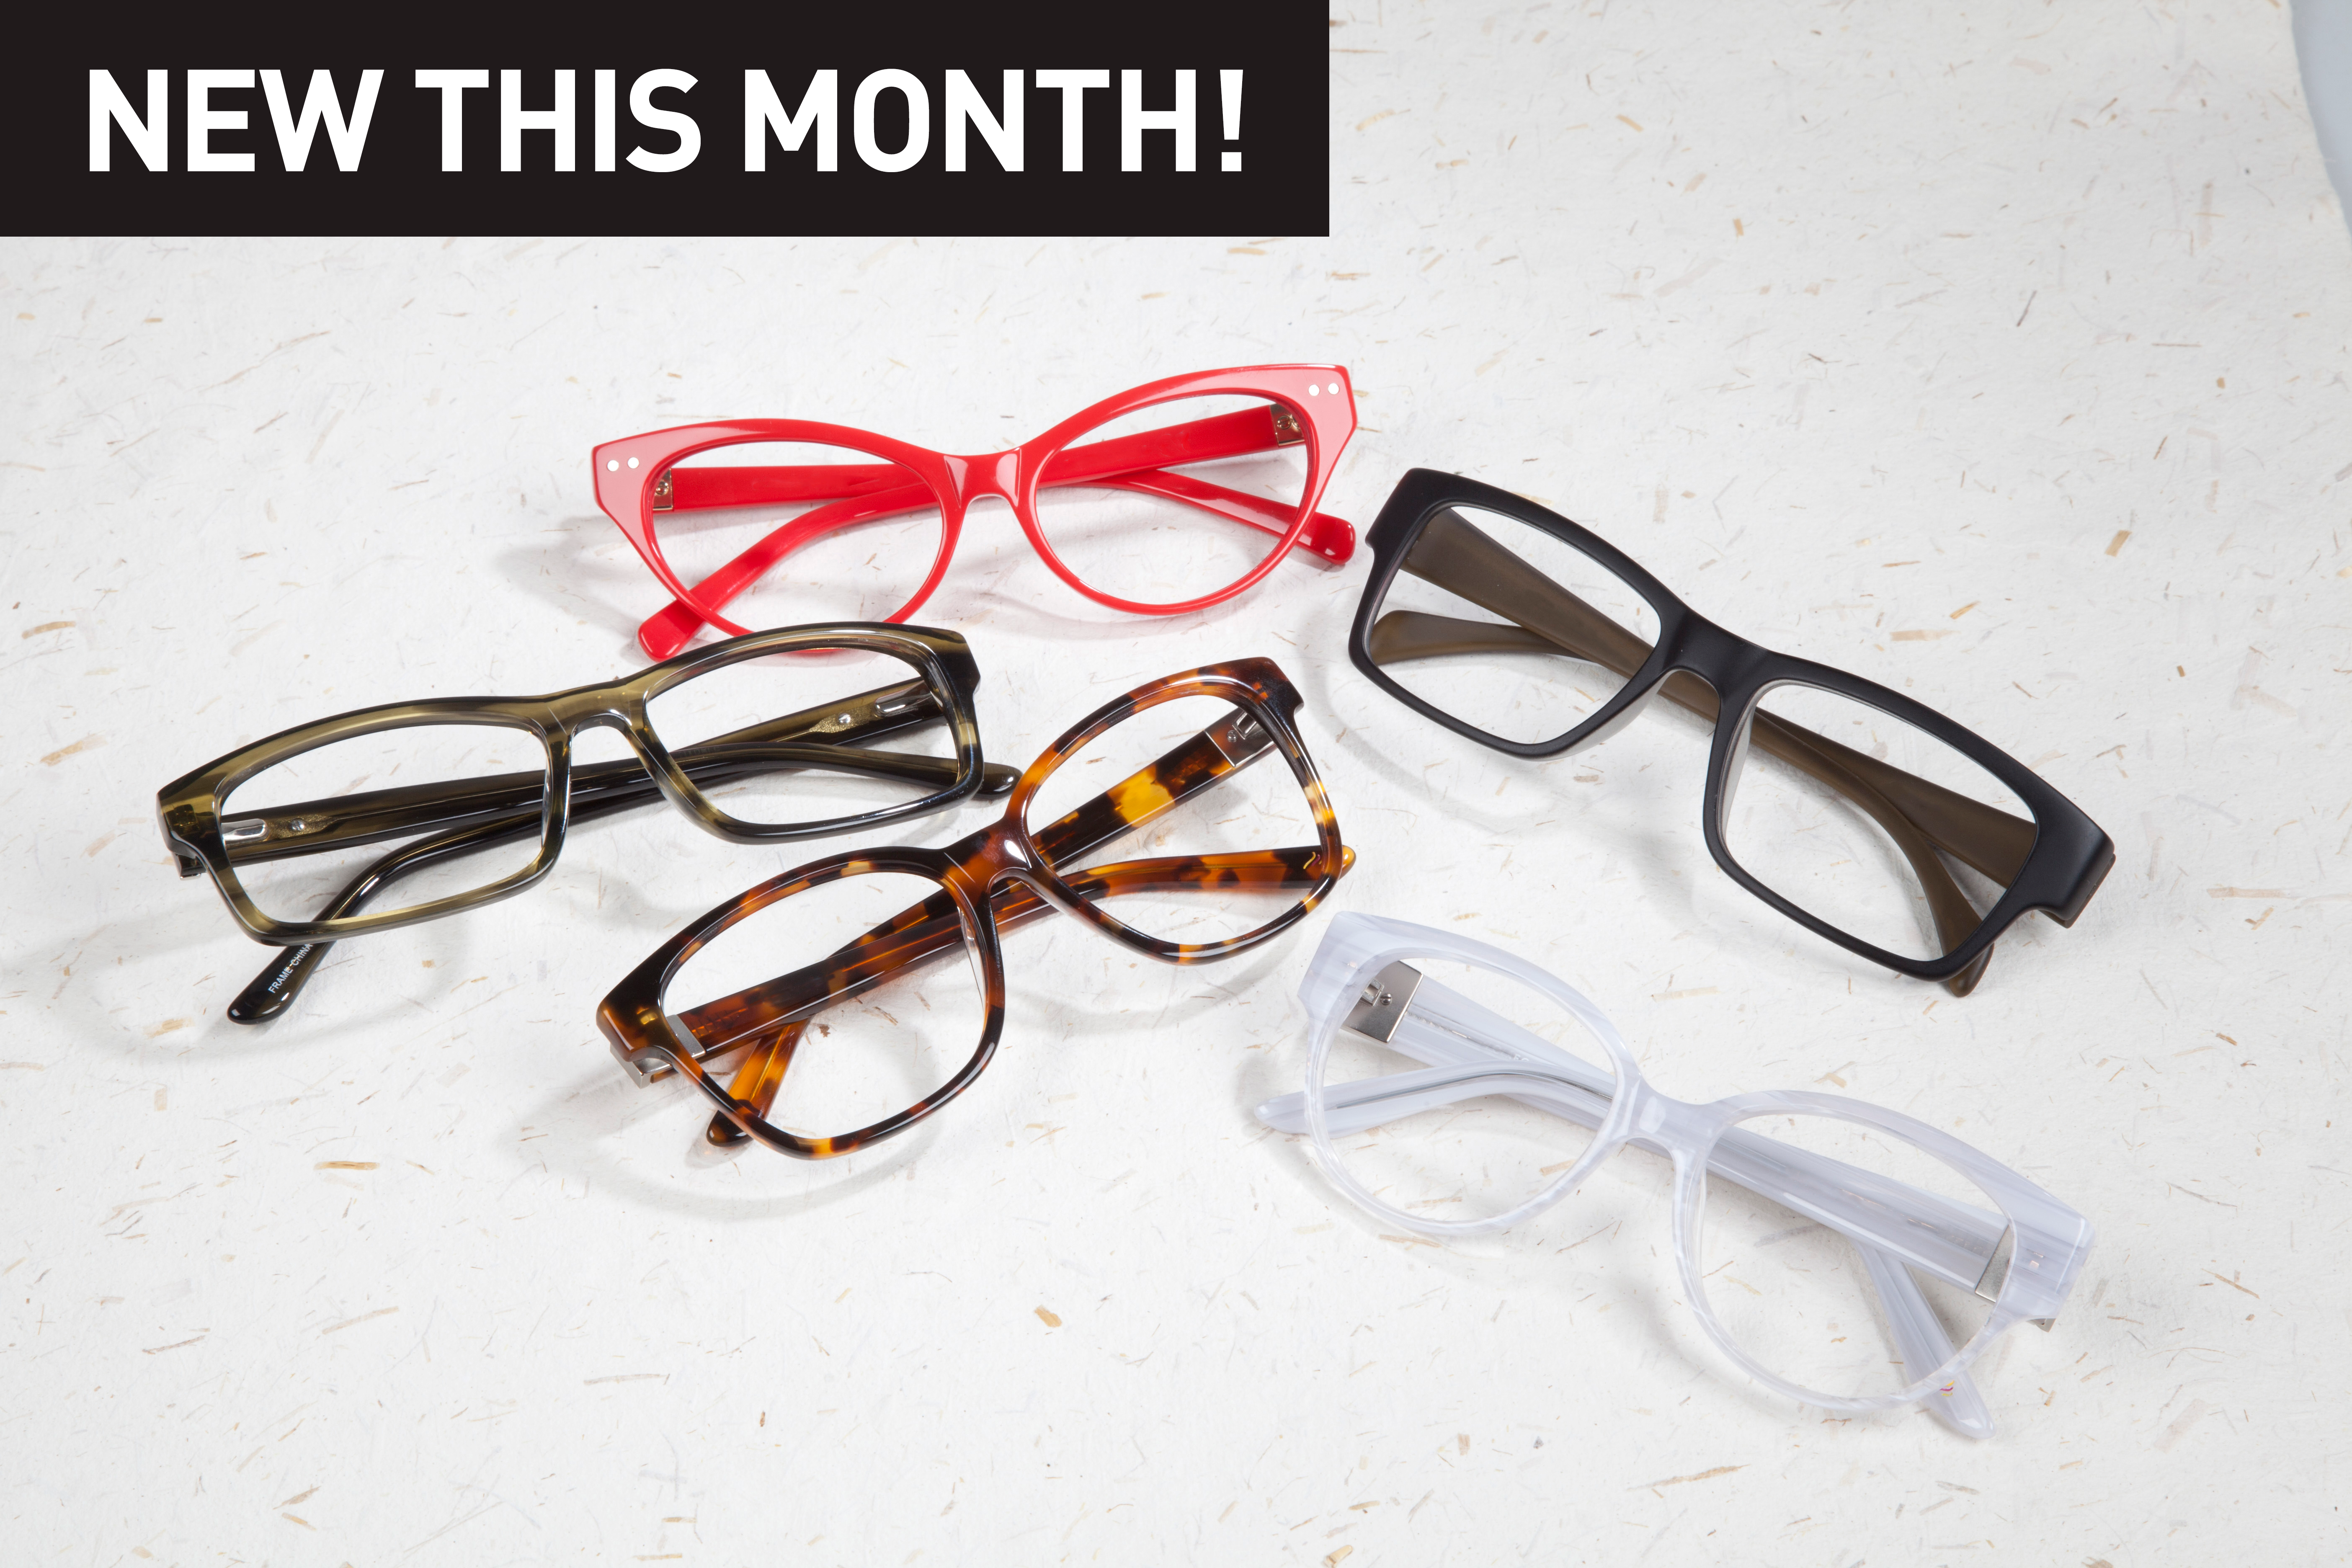 New from Safilo USA, Morel, Silhouette, and Visual Eyes: September 2018